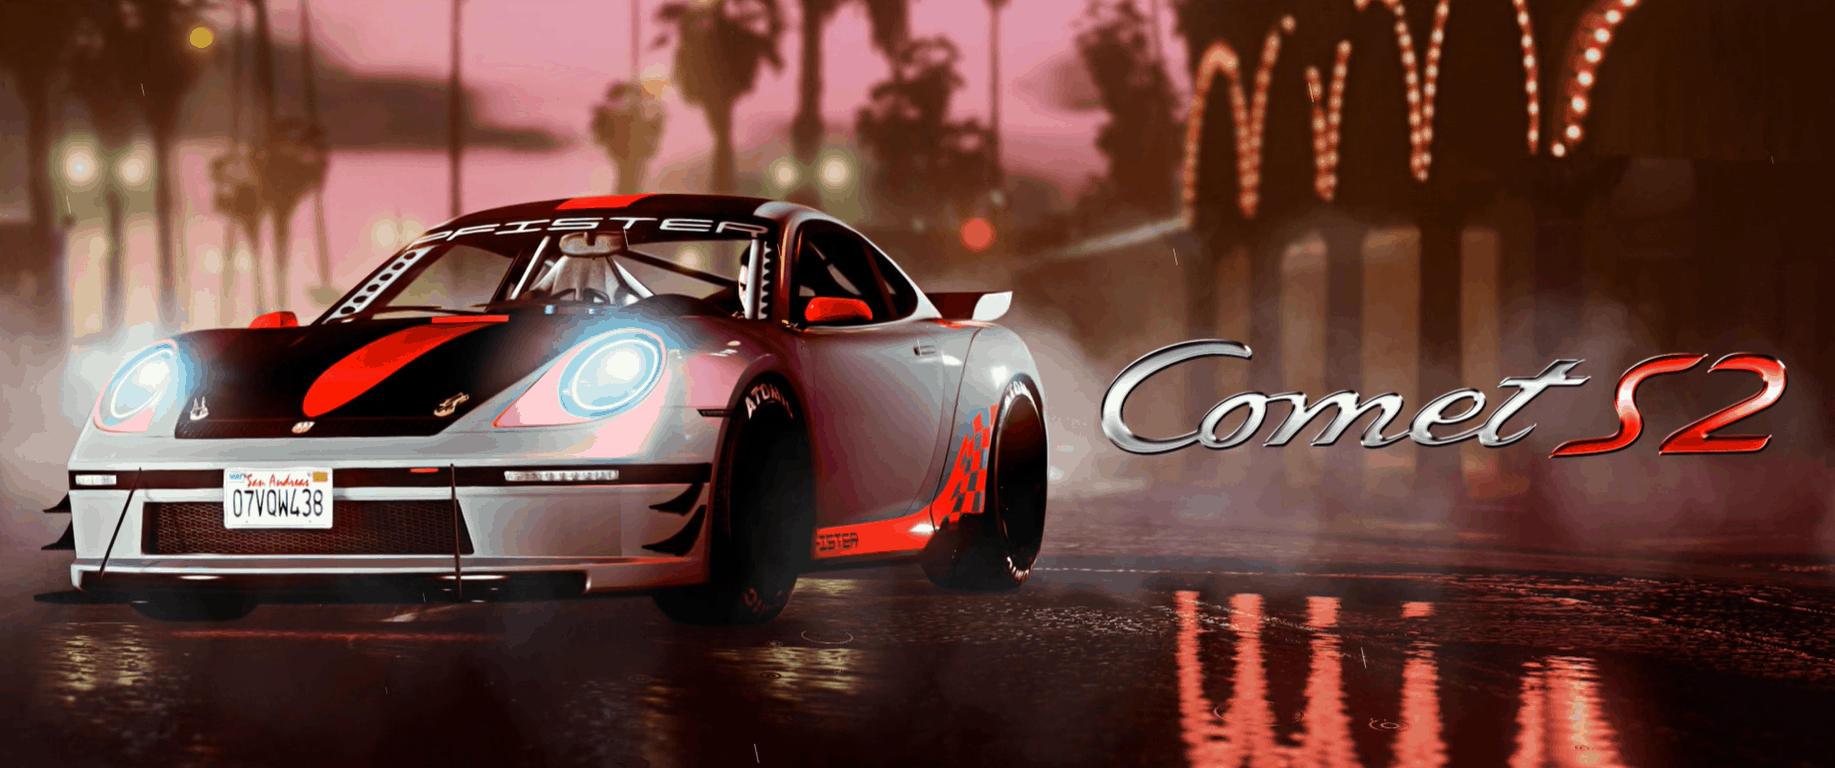 the-pfister-comet-s2-is-readily-available-now-in-gta-online